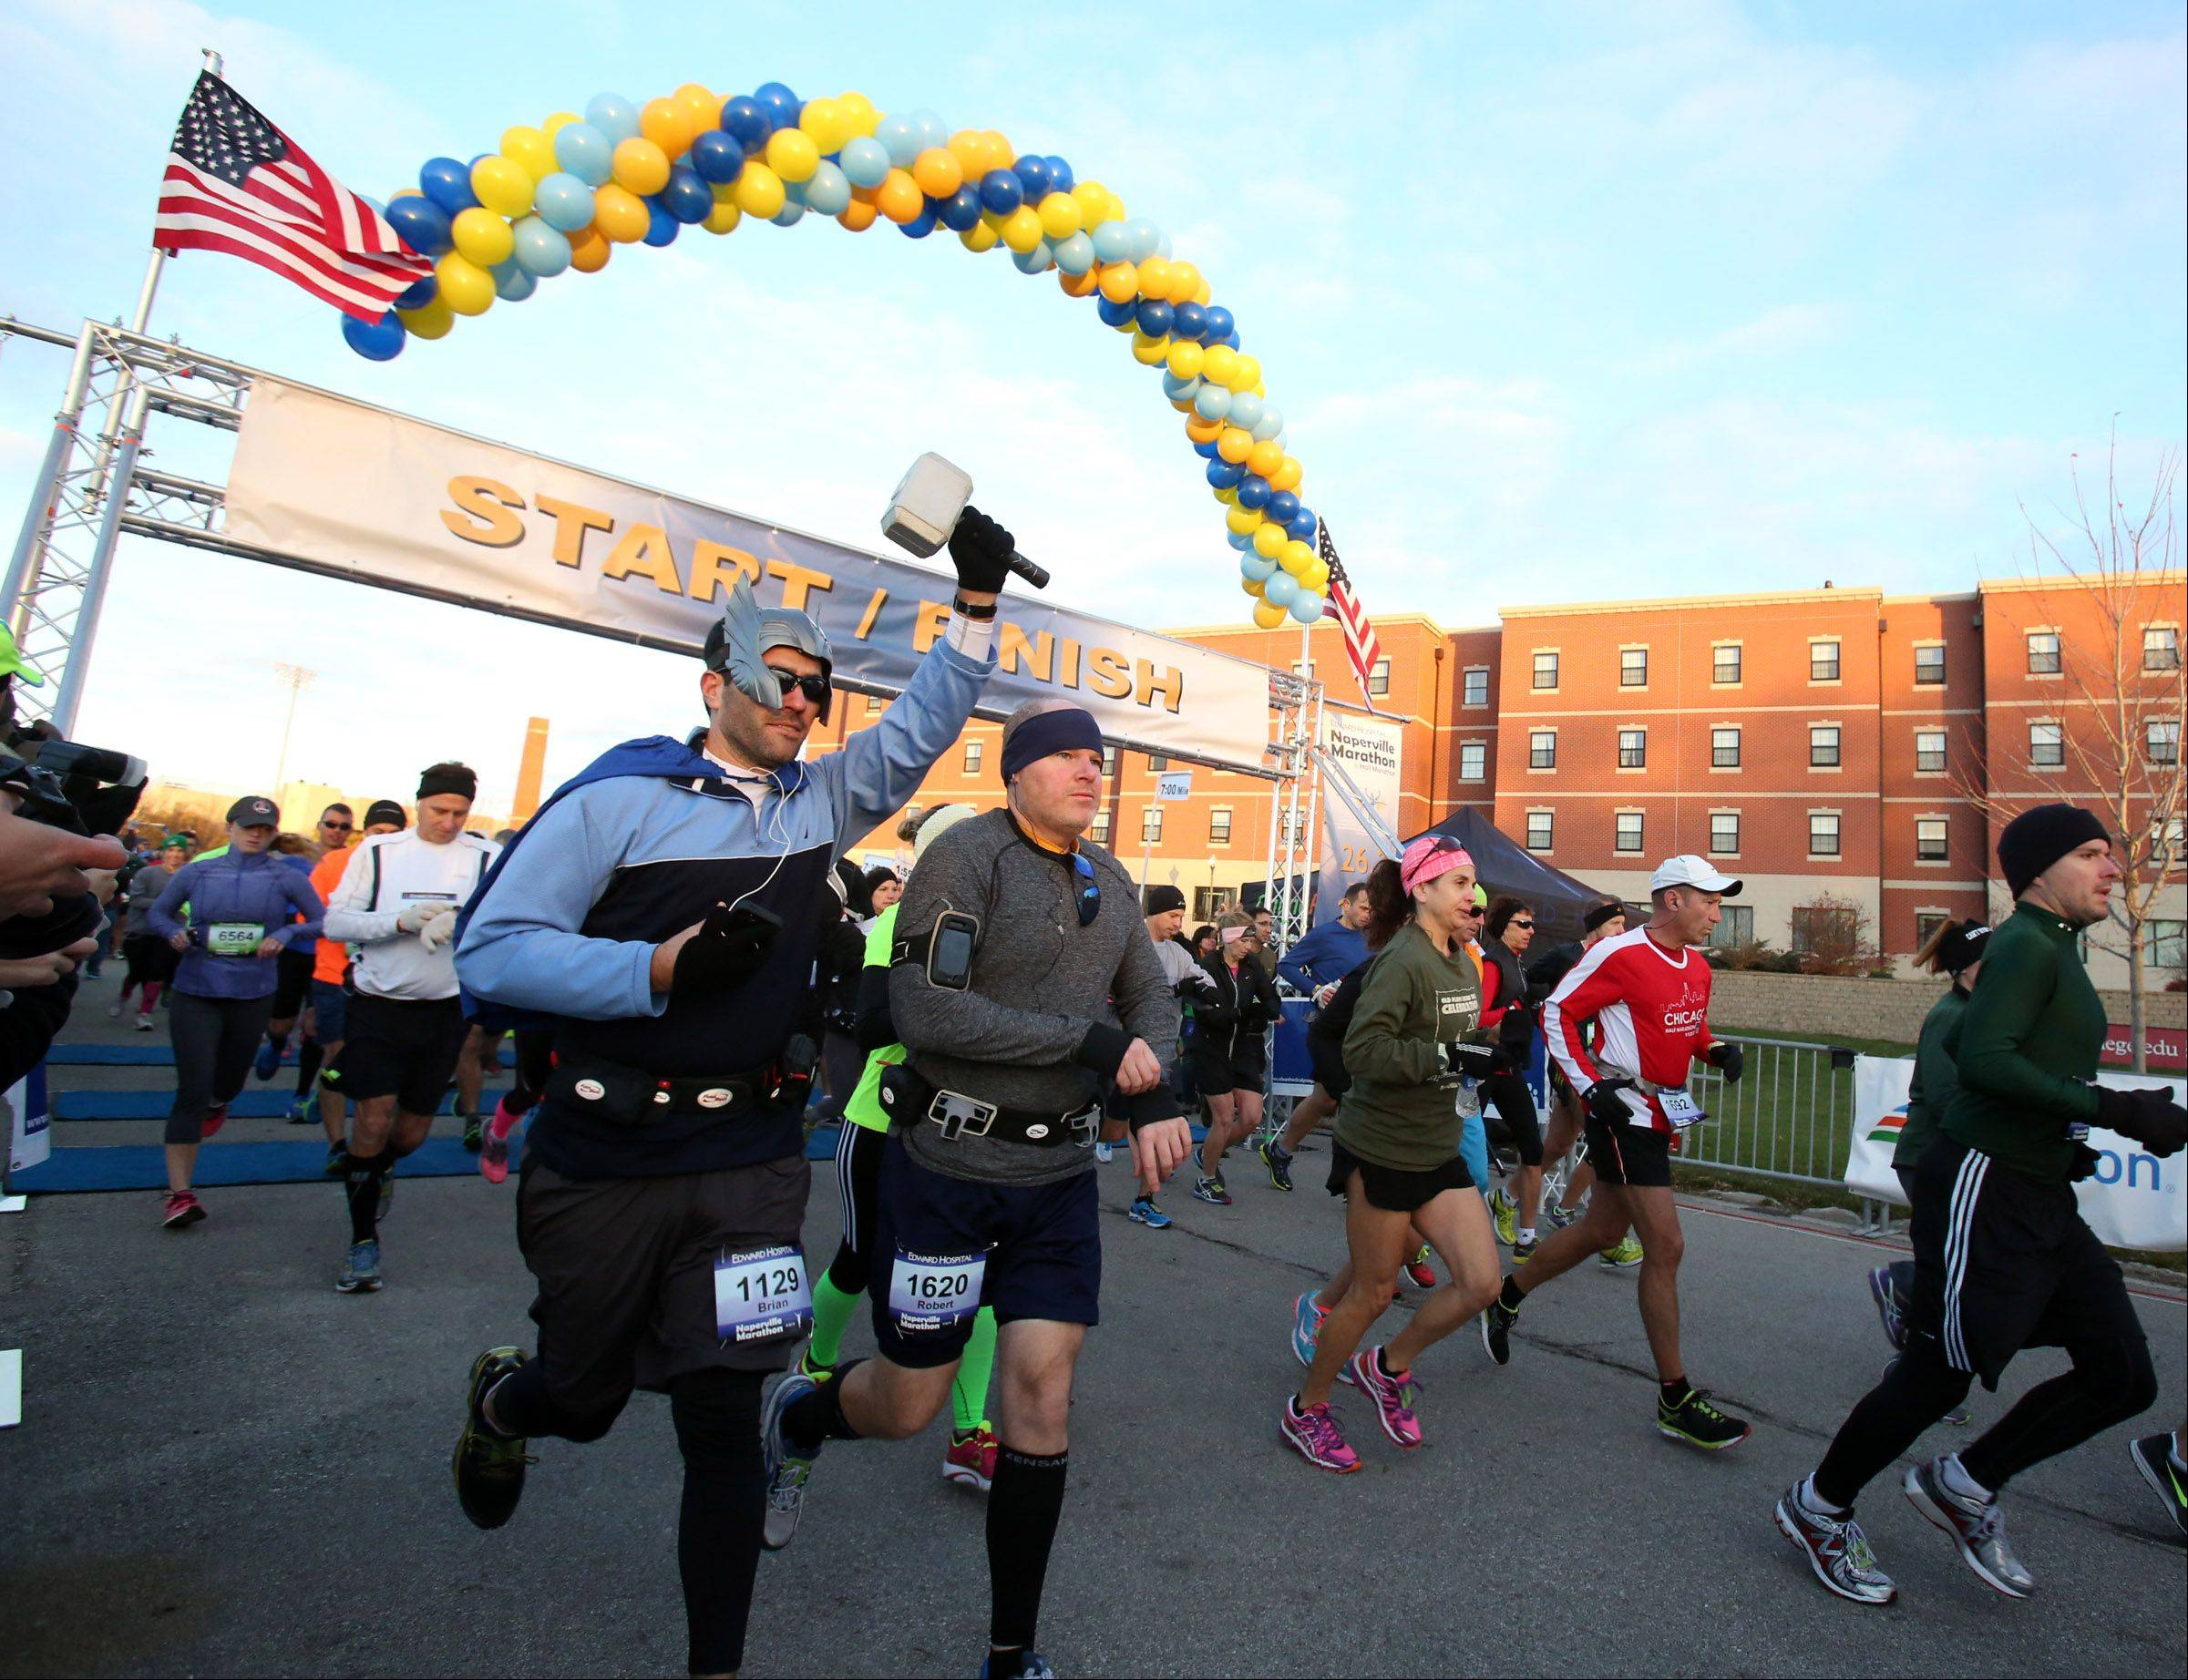 The start/finish line for the second running of the Edward Hospital Naperville Marathon and Half Marathon, scheduled for Sunday, Nov. 9, will be at a different location than the spot where the first race began and ended at North Central College.